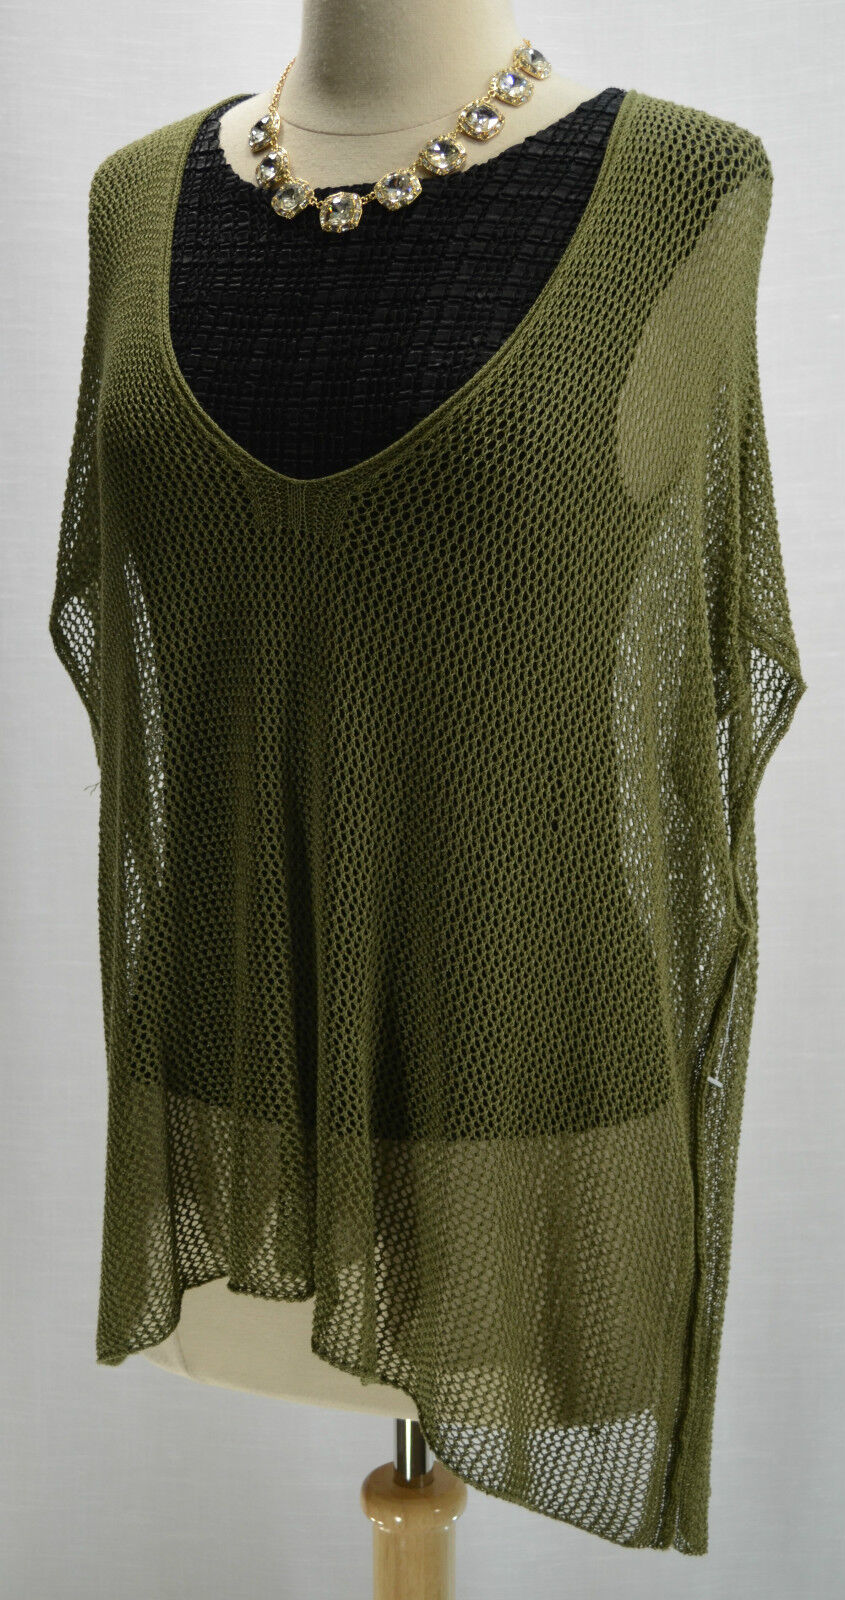 Bar III 3 Army green Olive loose open crochet shrug Sweater layer Top SZ M L NEW